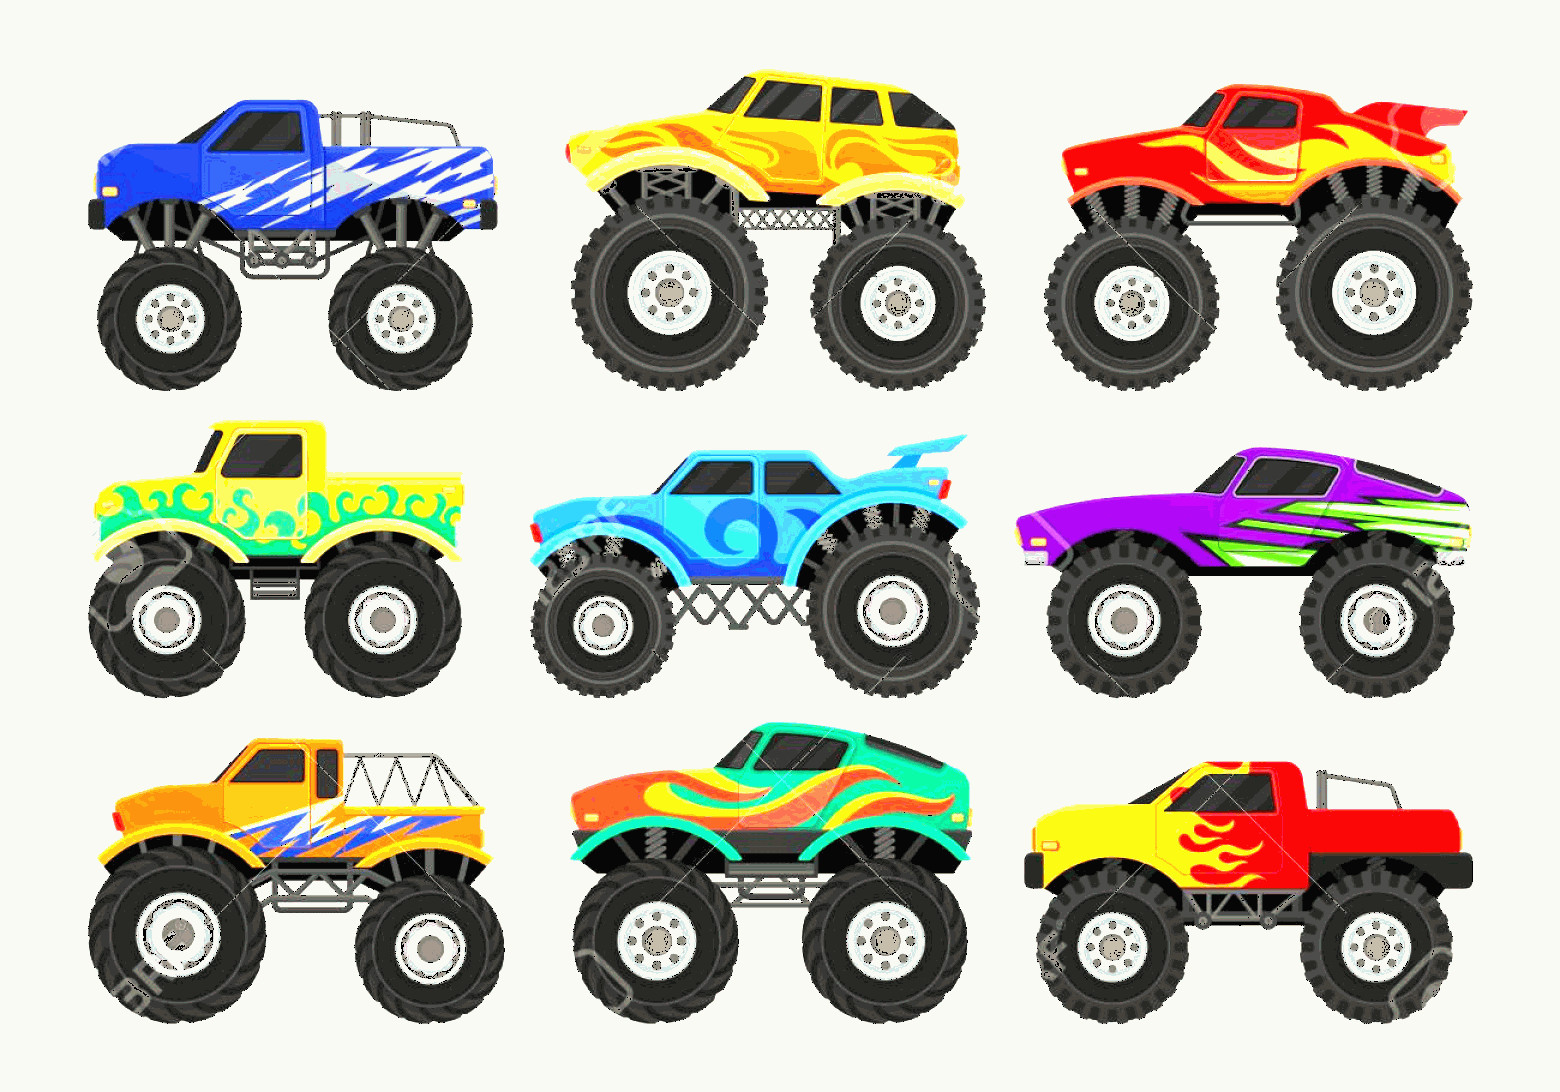 Monster Truck Tires Vector: Photostock Vector Set Of Colorful Monster Trucks Heavy Cars With Large Tires And Black Tinted Windows Graphic Elements